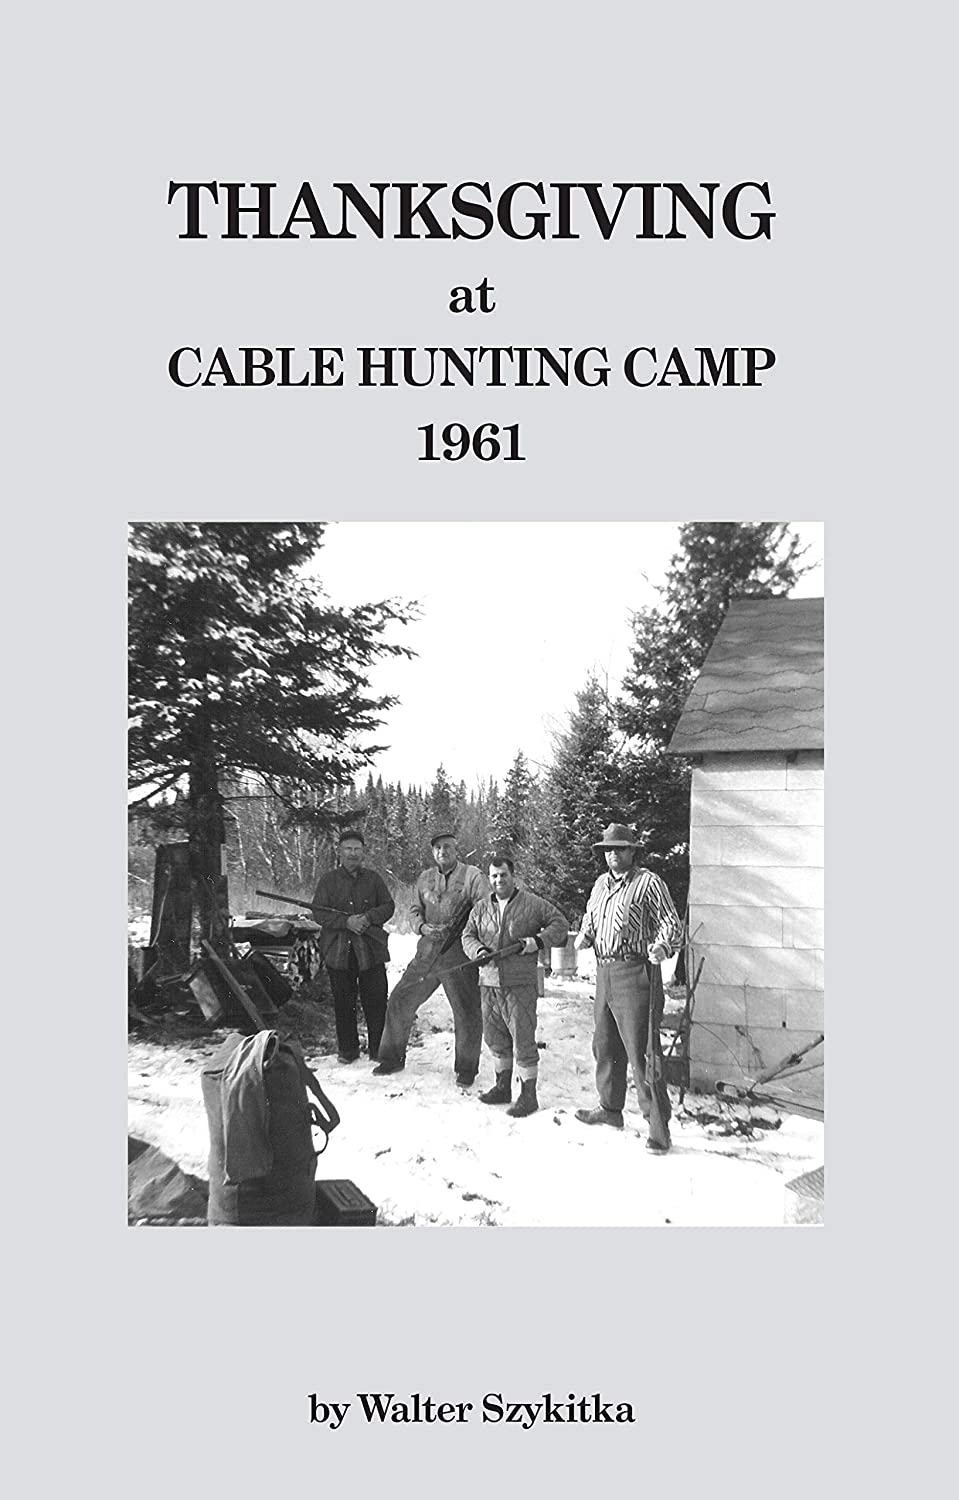 Thanksgiving at Cable Hunting Camp - 1961 (English Edition) eBook ...